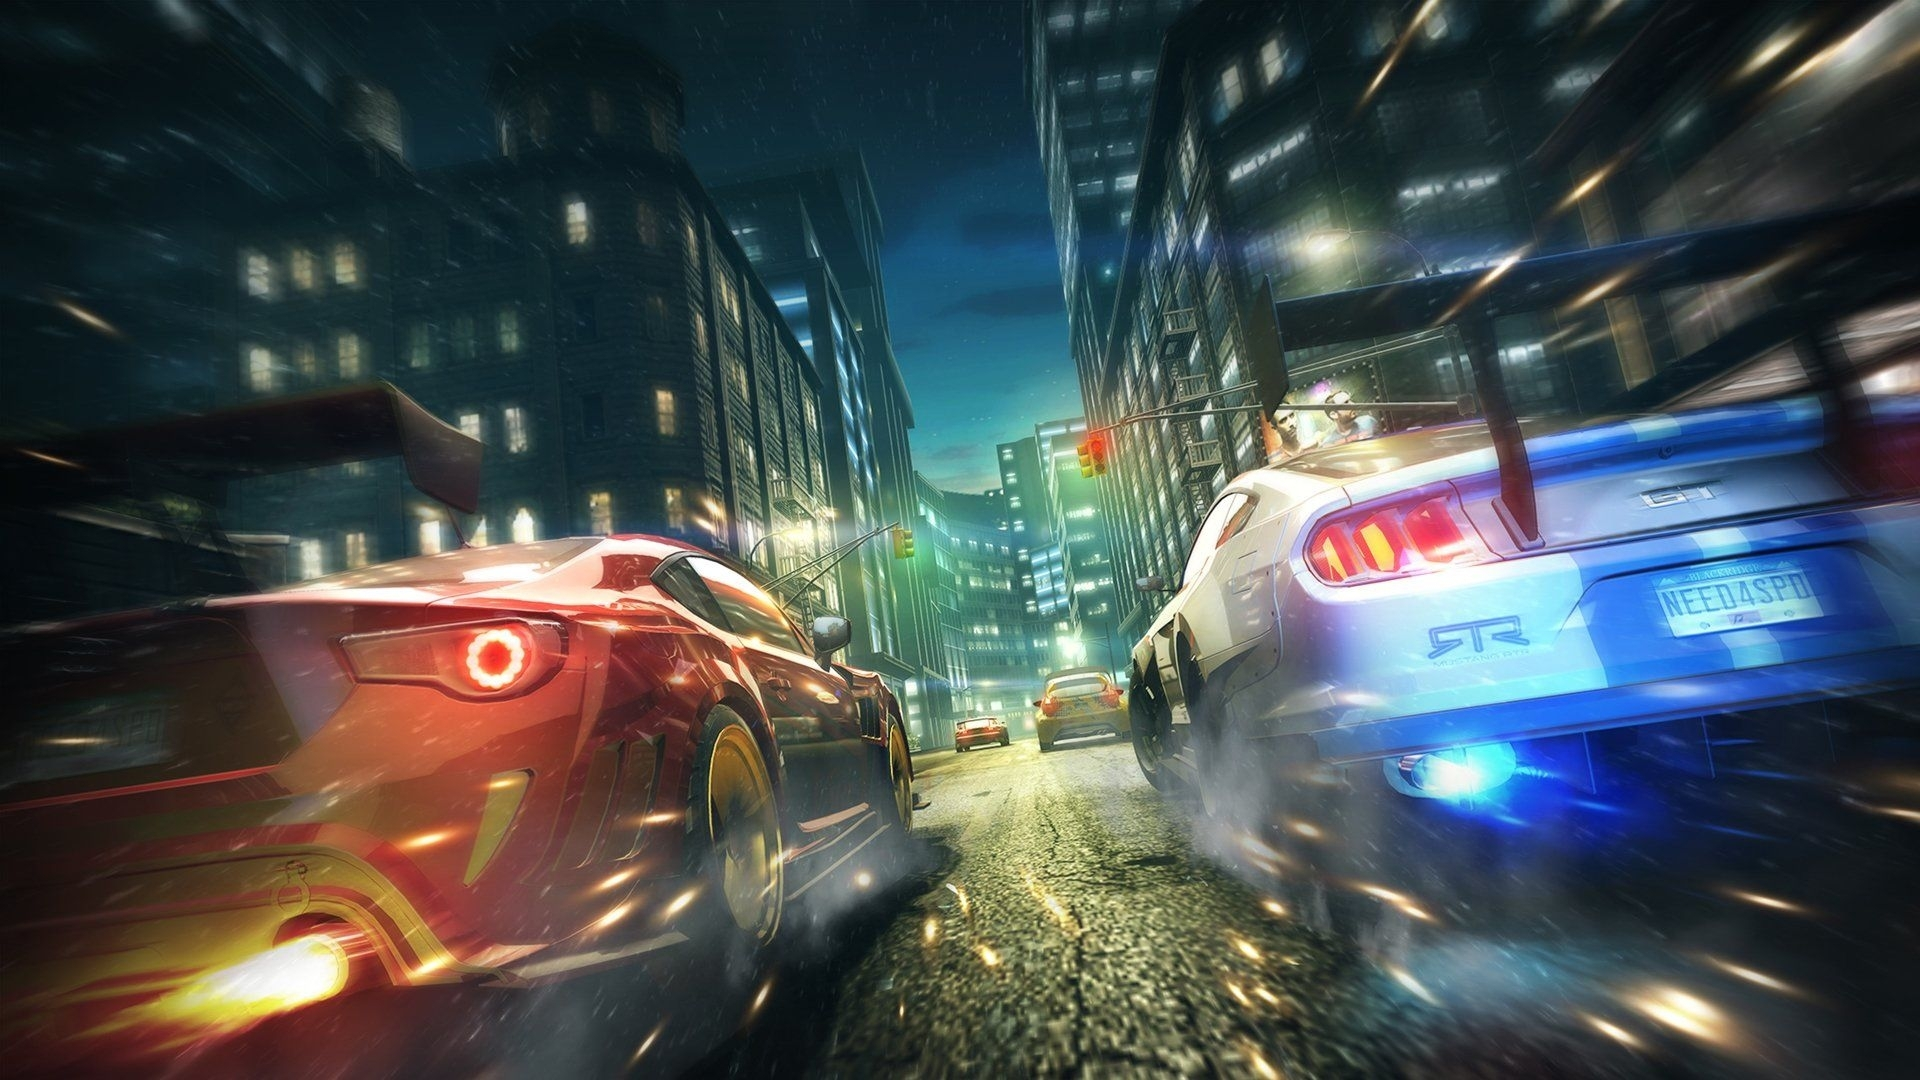 10 Most Popular Need For Speed Wallpaper Full Hd 1080p For: 10 Most Popular Need For Speed Wallpaper FULL HD 1080p For